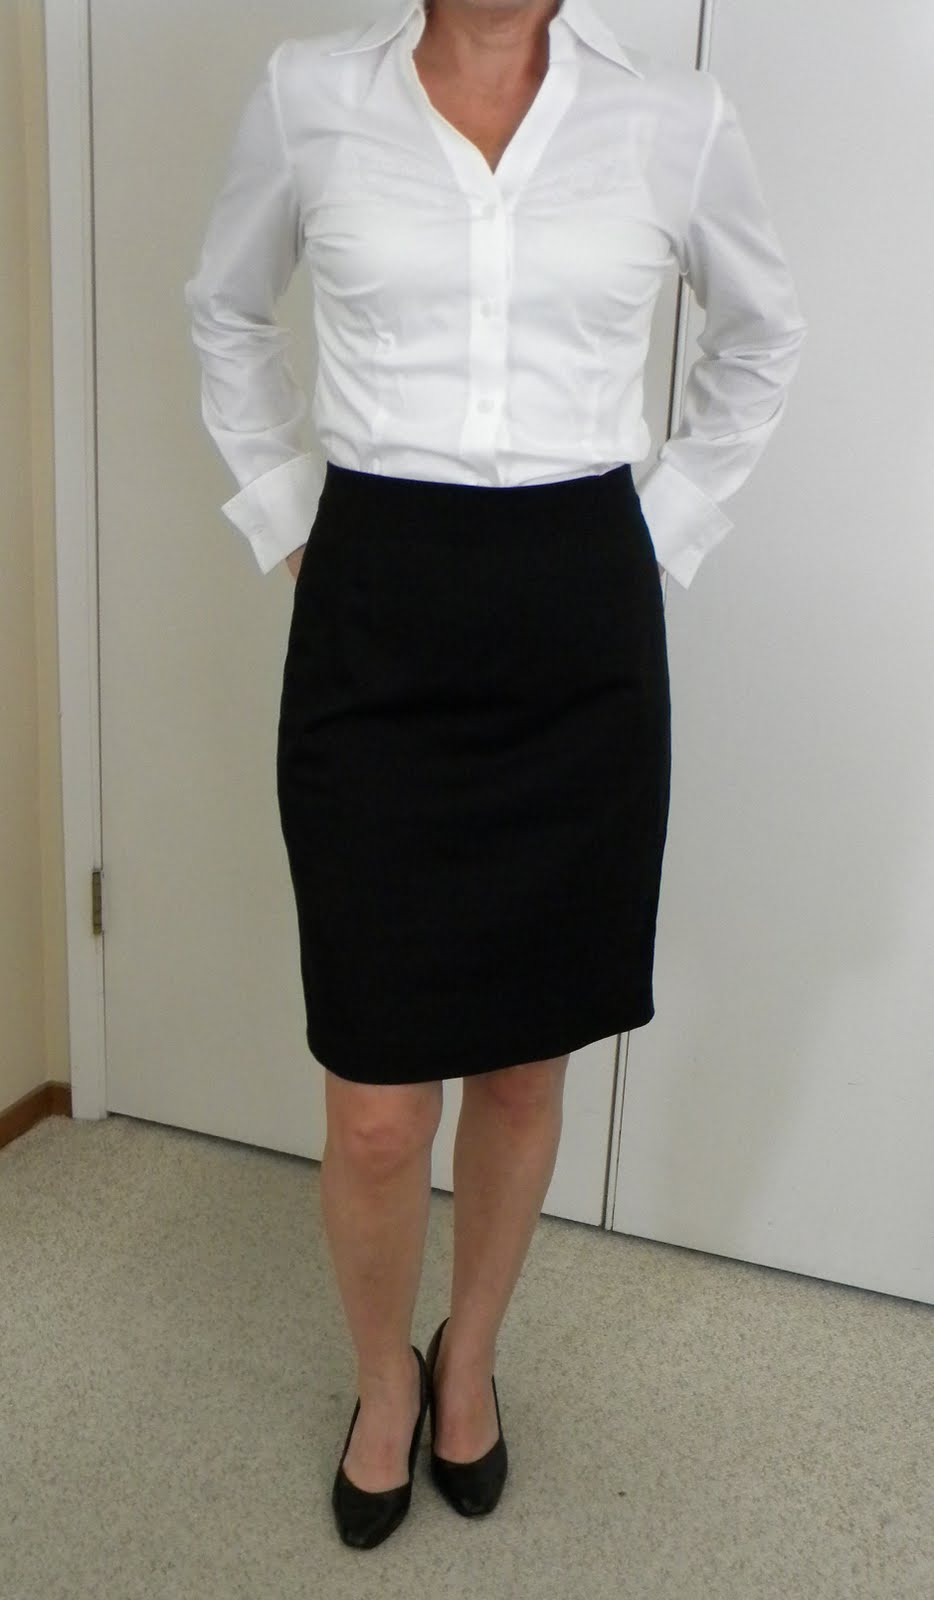 Black Skirt And Blouse 106